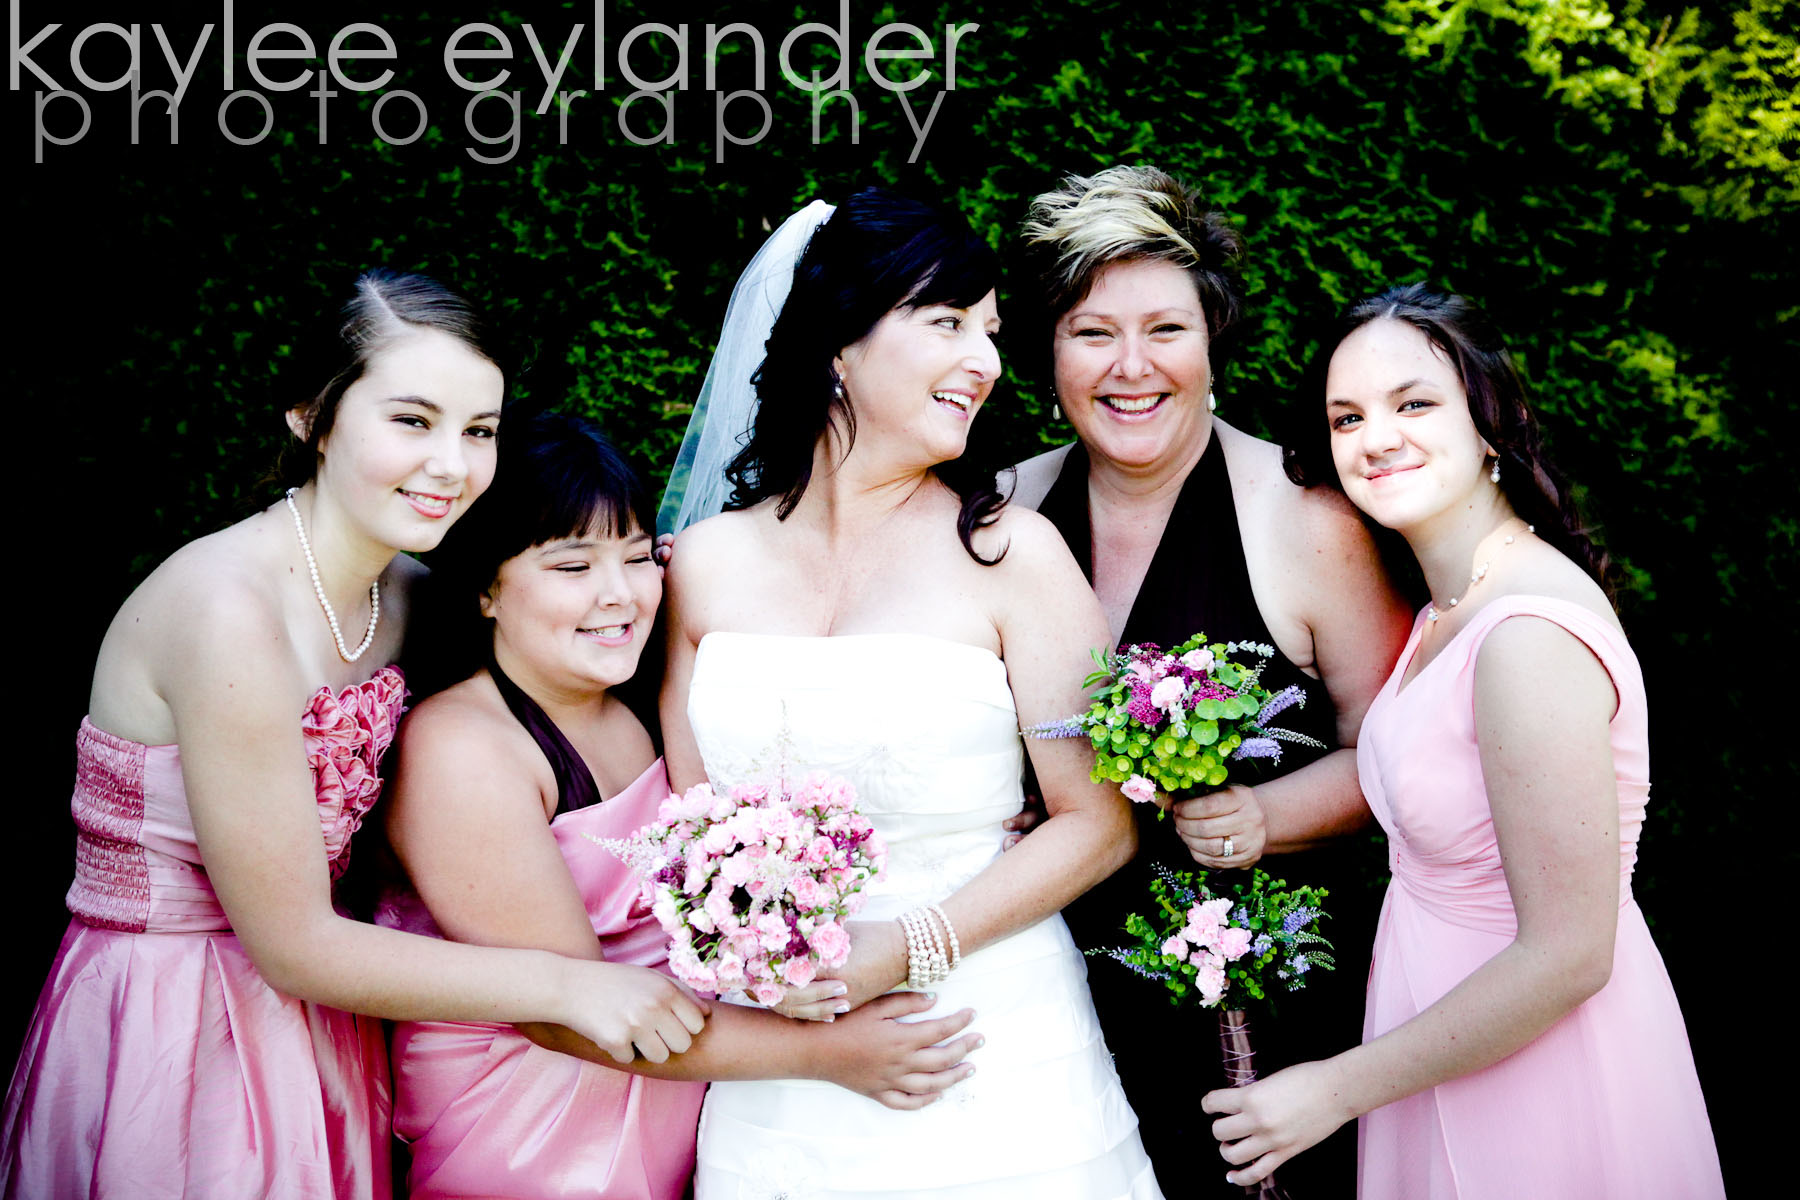 Wedding party 2 DIY Modern Vintage Wedding....gotta love it! | Kaylee Eylander Photography